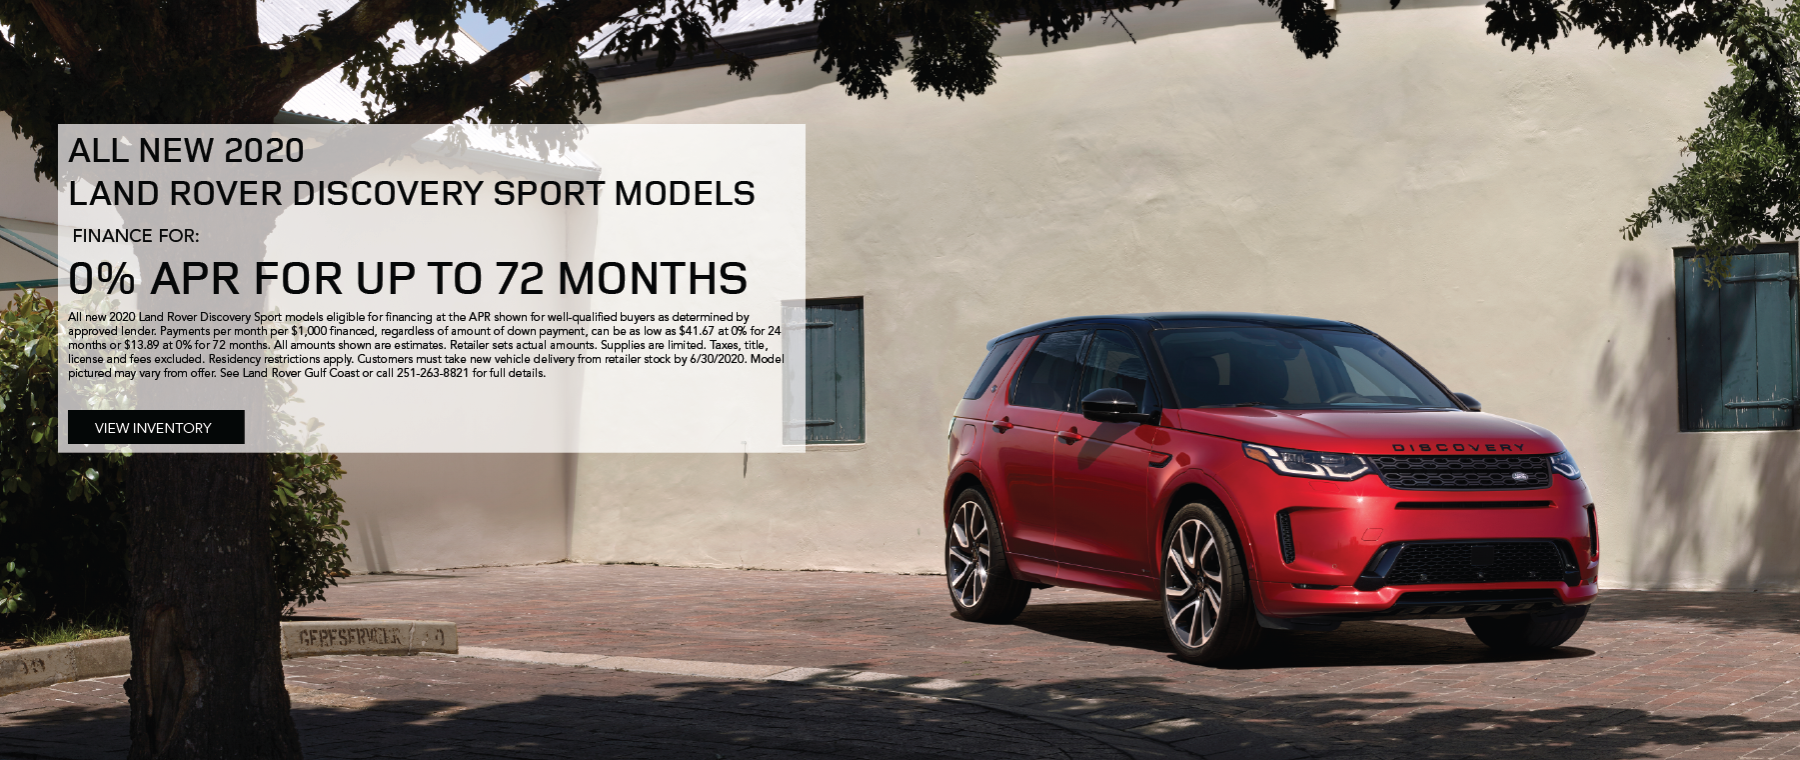 Red 2020 Discovery Sport on brick driveway in front of building. 0% APR for up to 72 months on all new 2020 Discovery Sport models. All new 2020 Land Rover Discovery Sport models eligible for financing at the APR shown for well-qualified buyers as determined by approved lender. Payments per month per $1,000 financed, regardless of amount of down payment, can be as low as $41.67 at 0% for 24 months or $13.89 at 0% for 72 months. All amounts shown are estimates. Retailer sets actual amounts. Supplies are limited. Taxes, title, license and fees excluded. Residency restrictions apply. Customers must take new vehicle delivery from retailer stock by 6/30/2020. Model pictured may vary from offer. See Land Rover Gulf Coast or call 251-263-8821 for full details. Click to view Inventory.